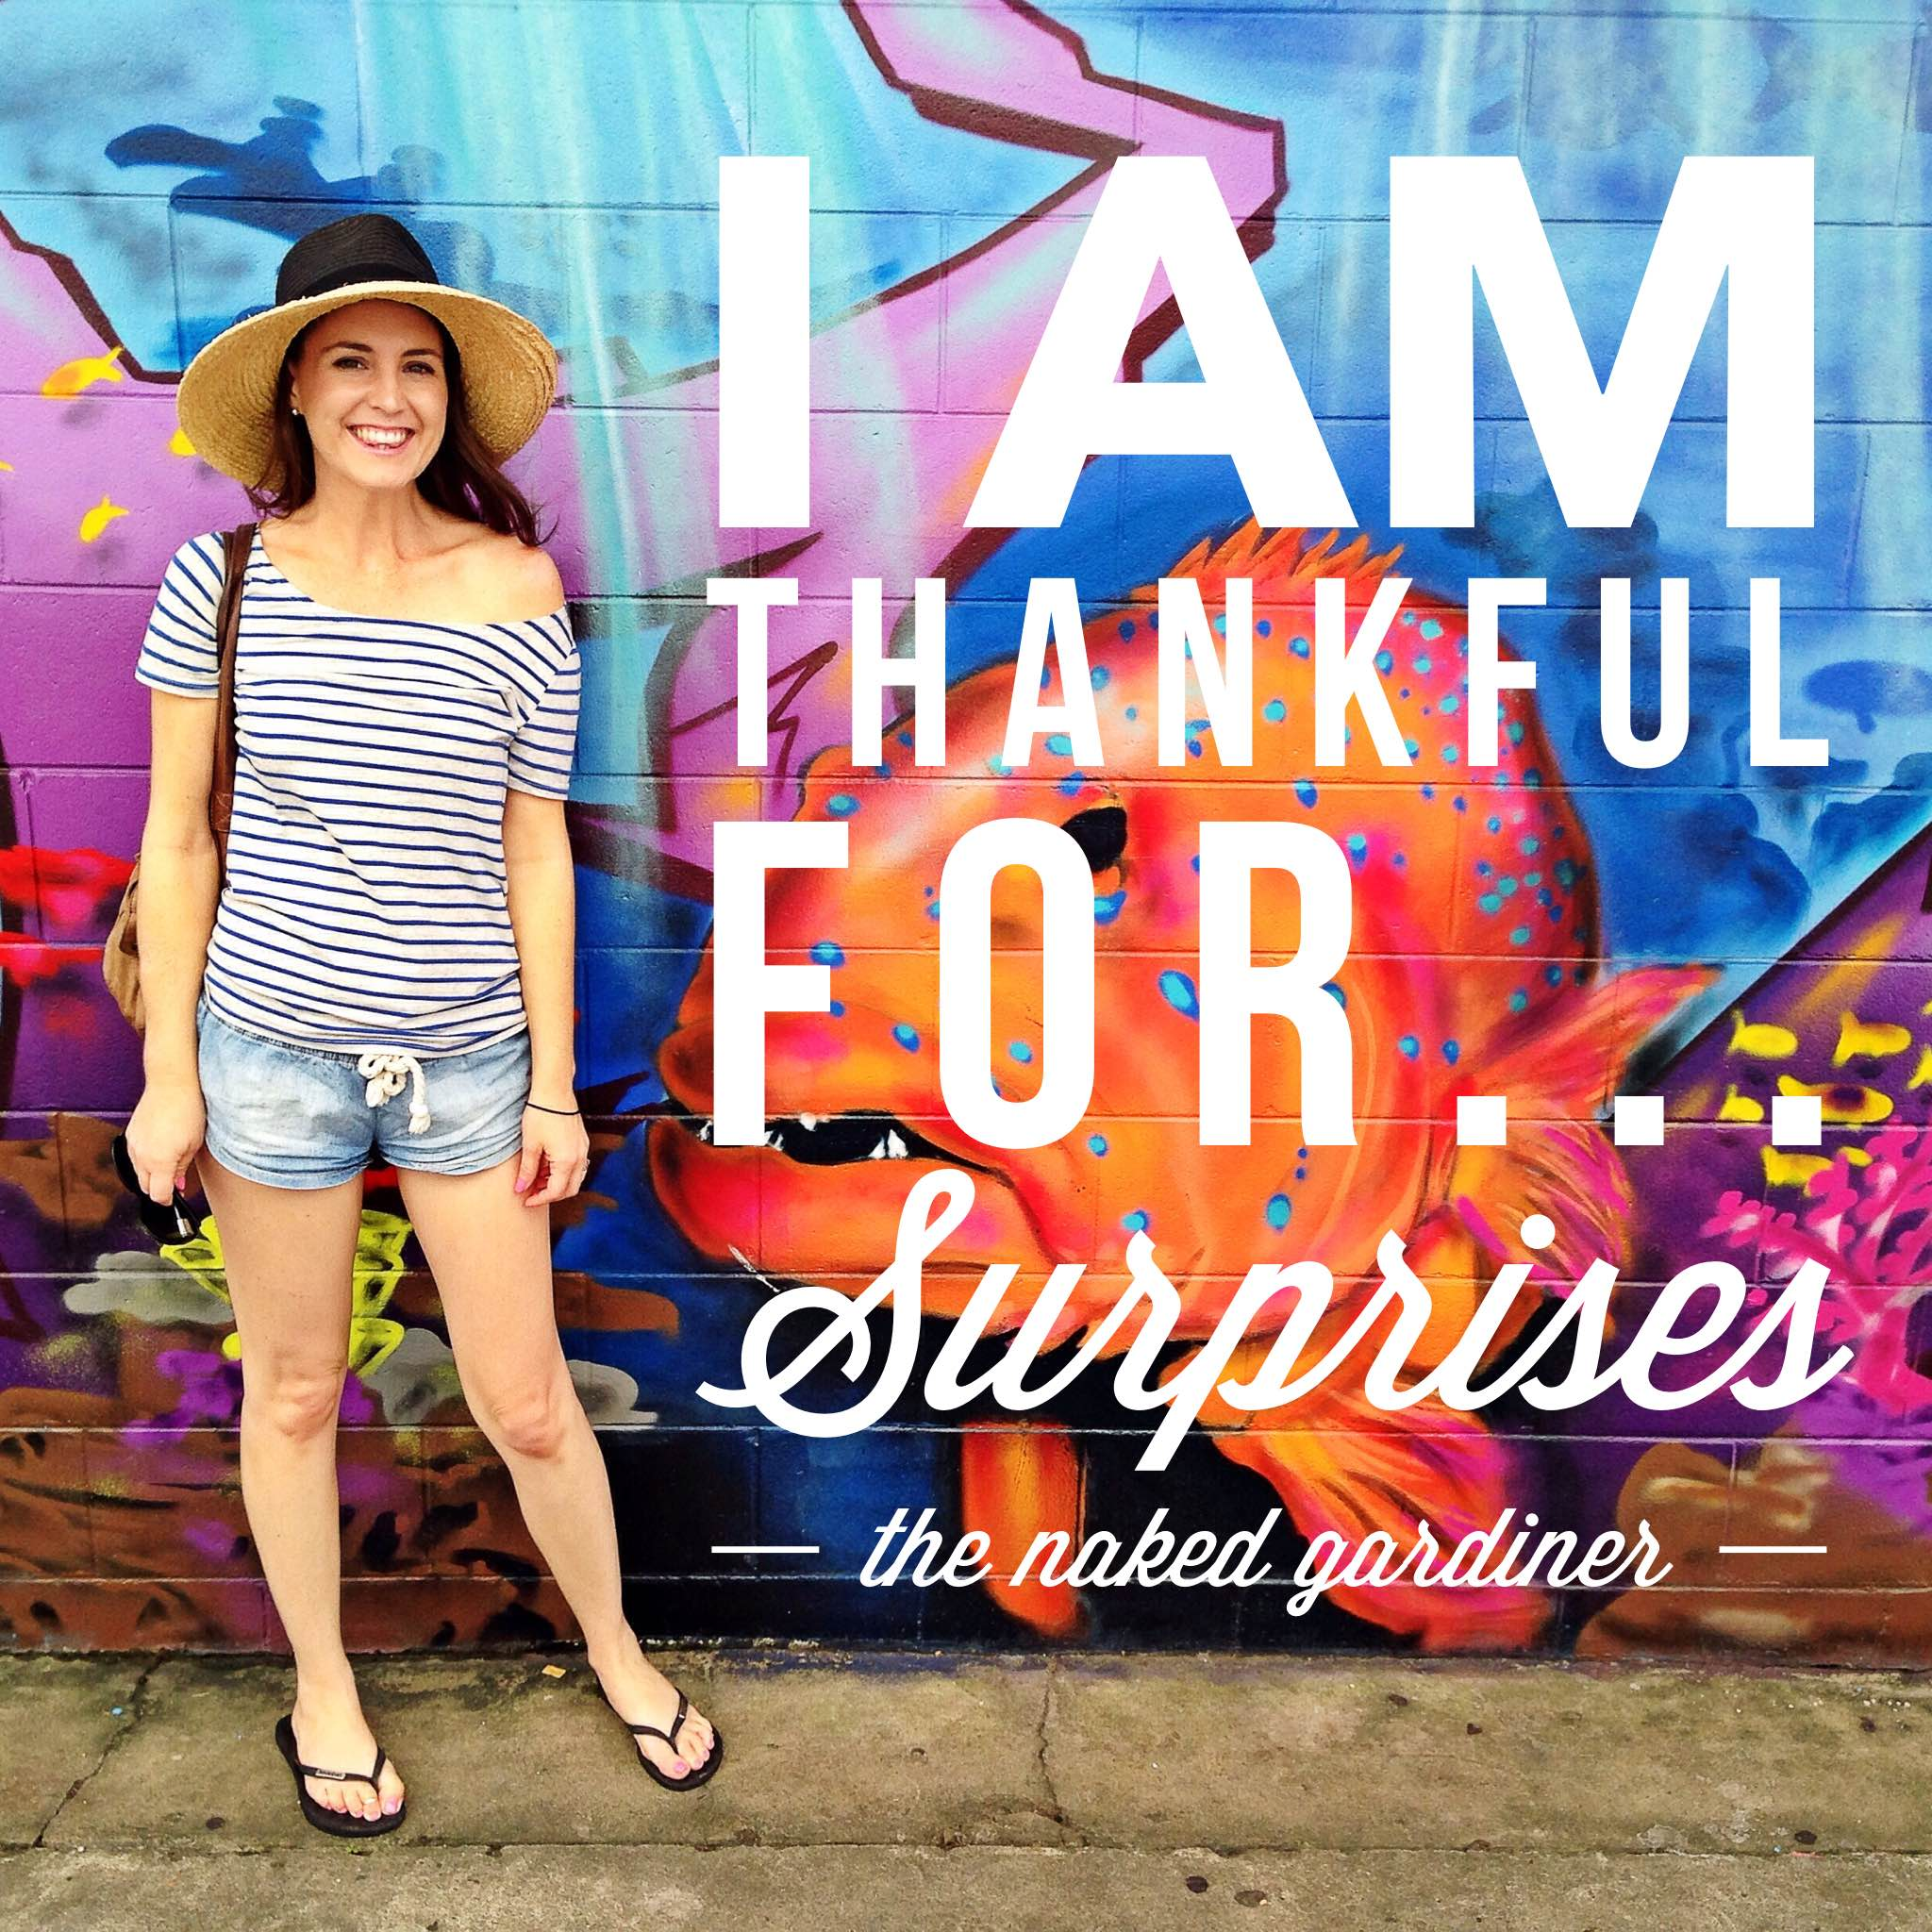 thankful-thursdays-surprises-thenakedgardiner